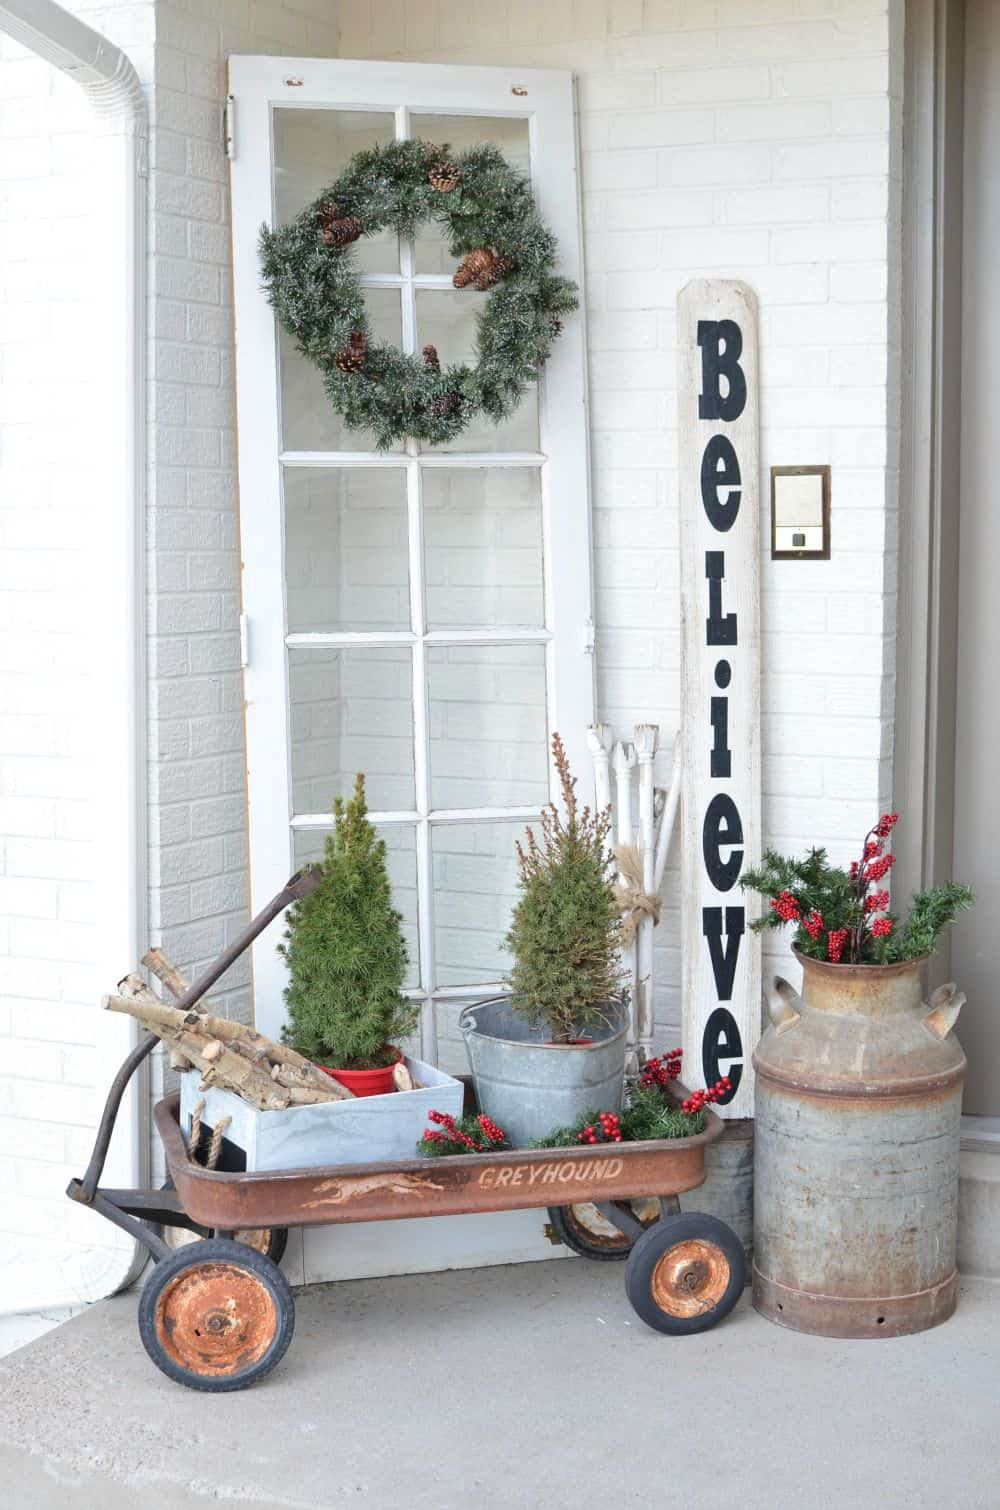 Christmas on the front porch vintage christmas decor ideas for your front porch 2 1540842795